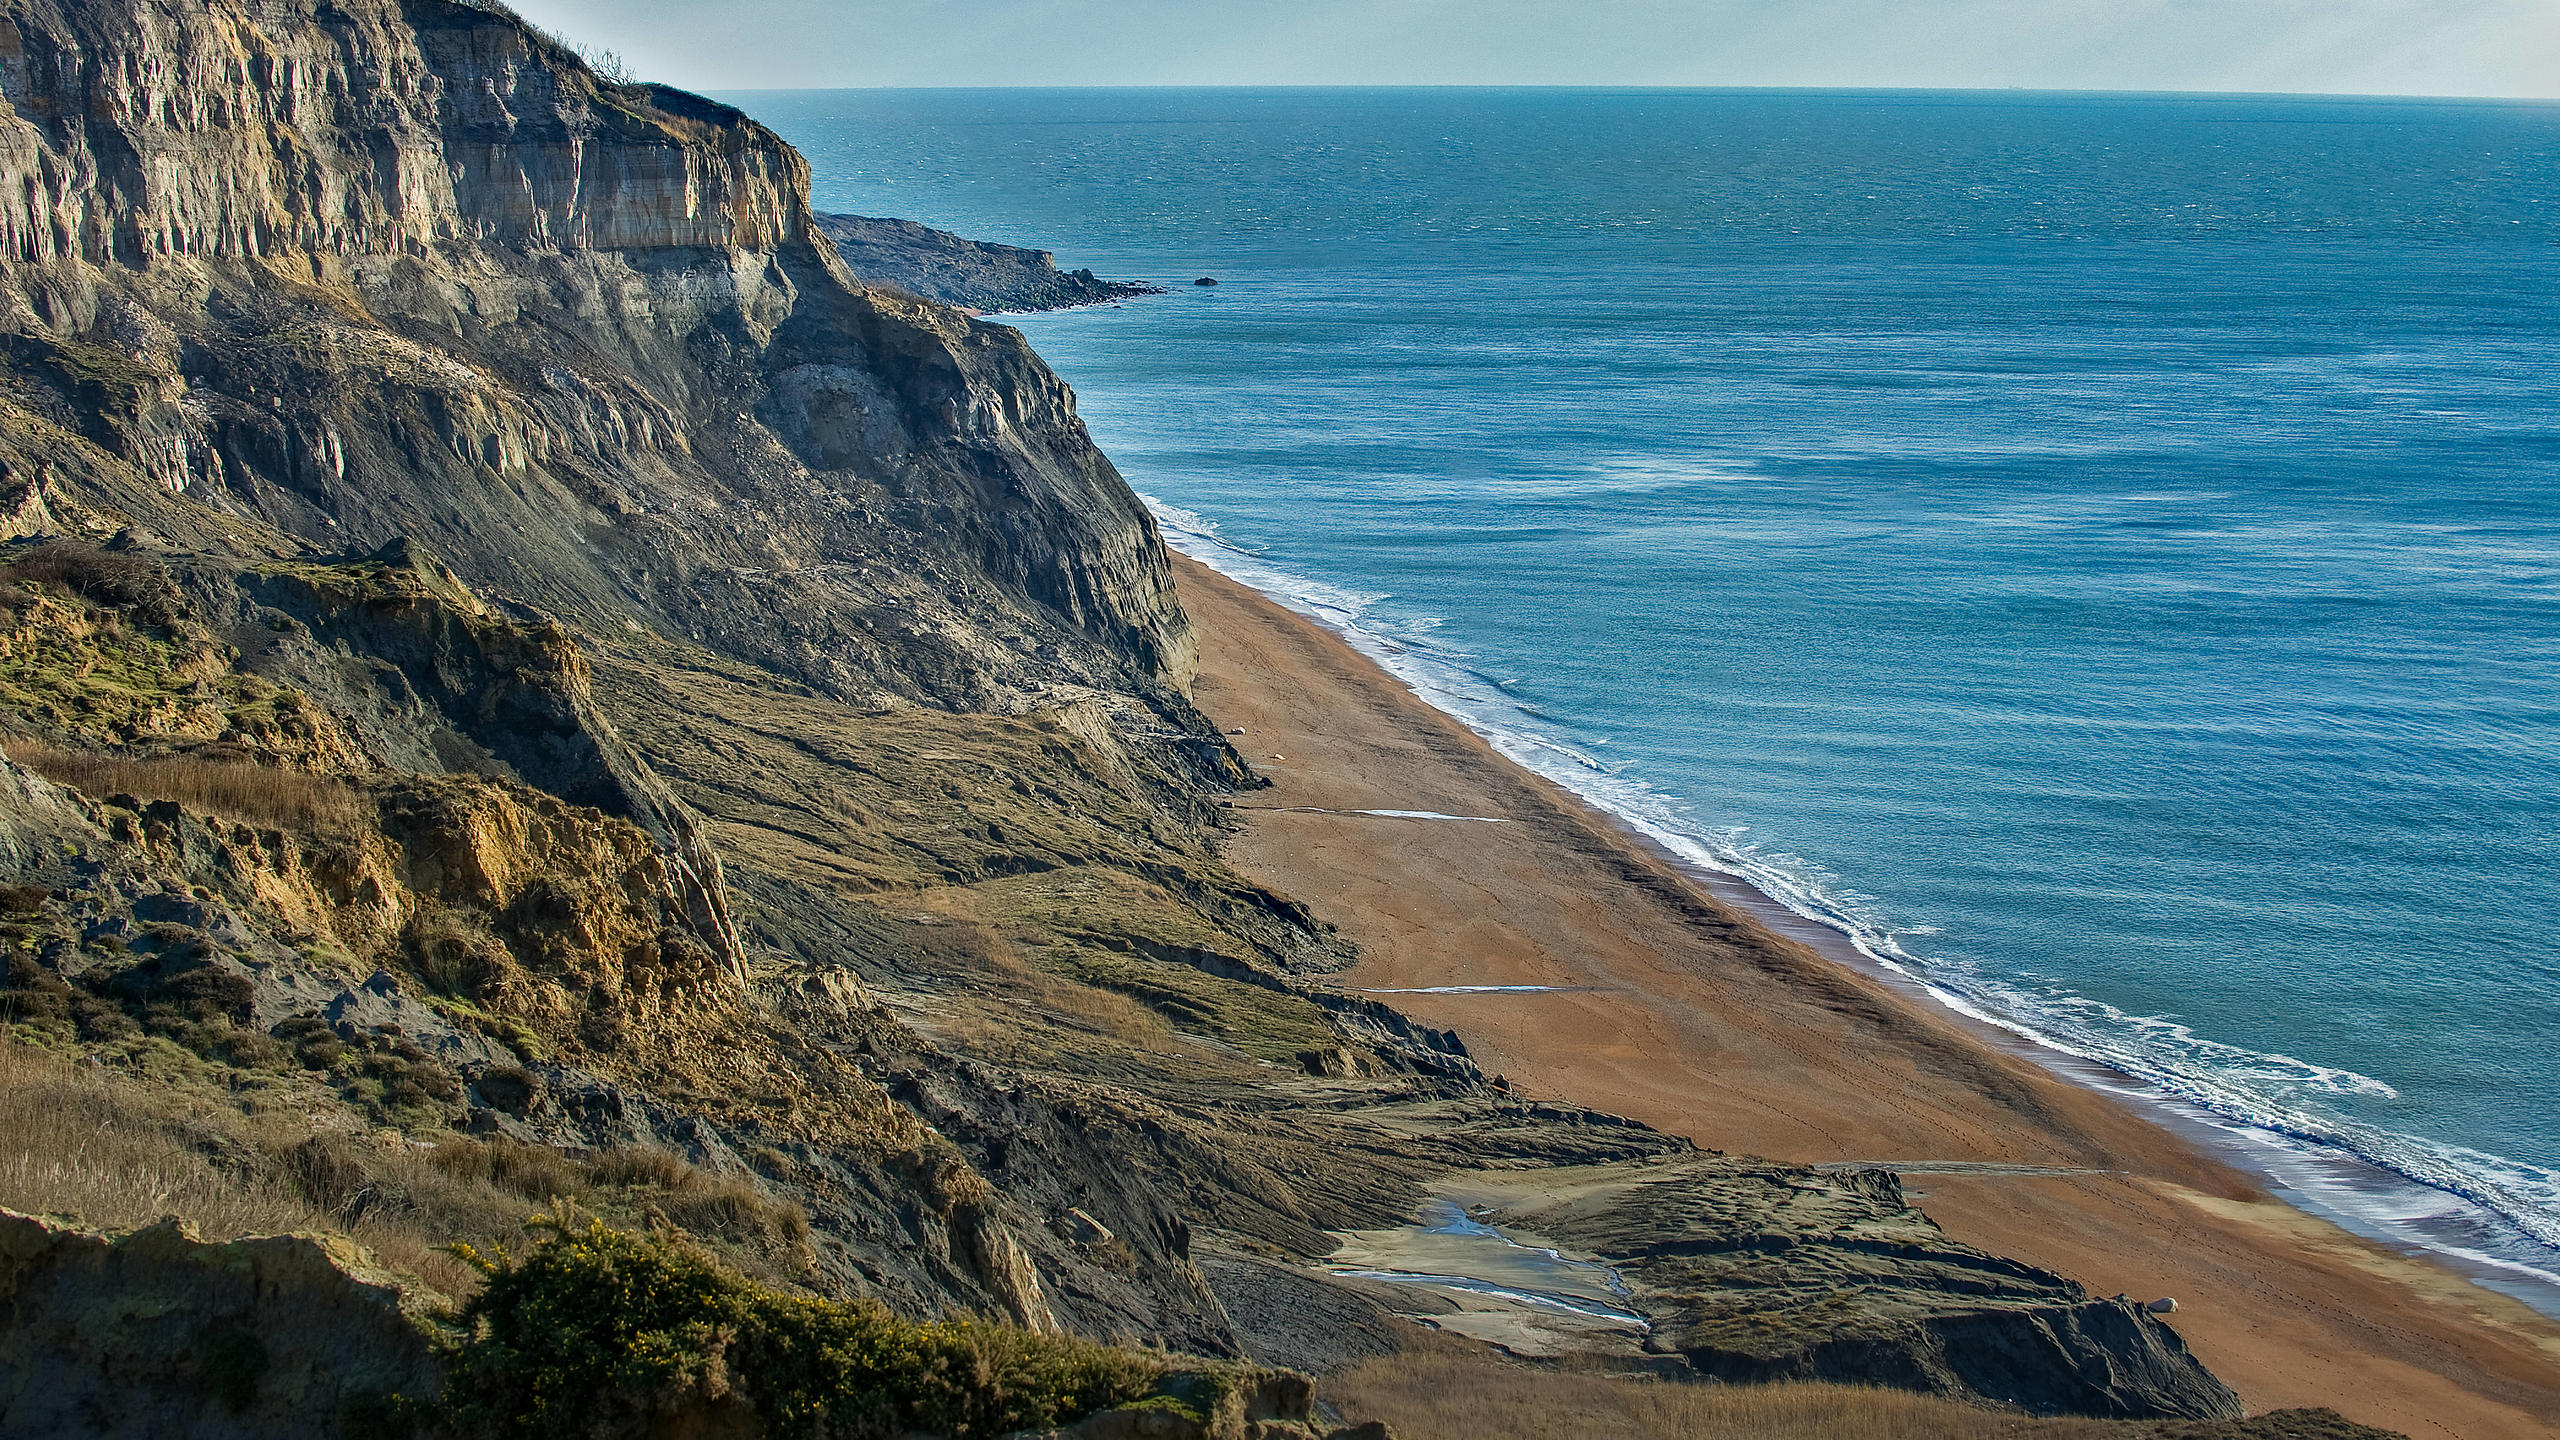 Isle of Wight's Southern Coastal Cliffs